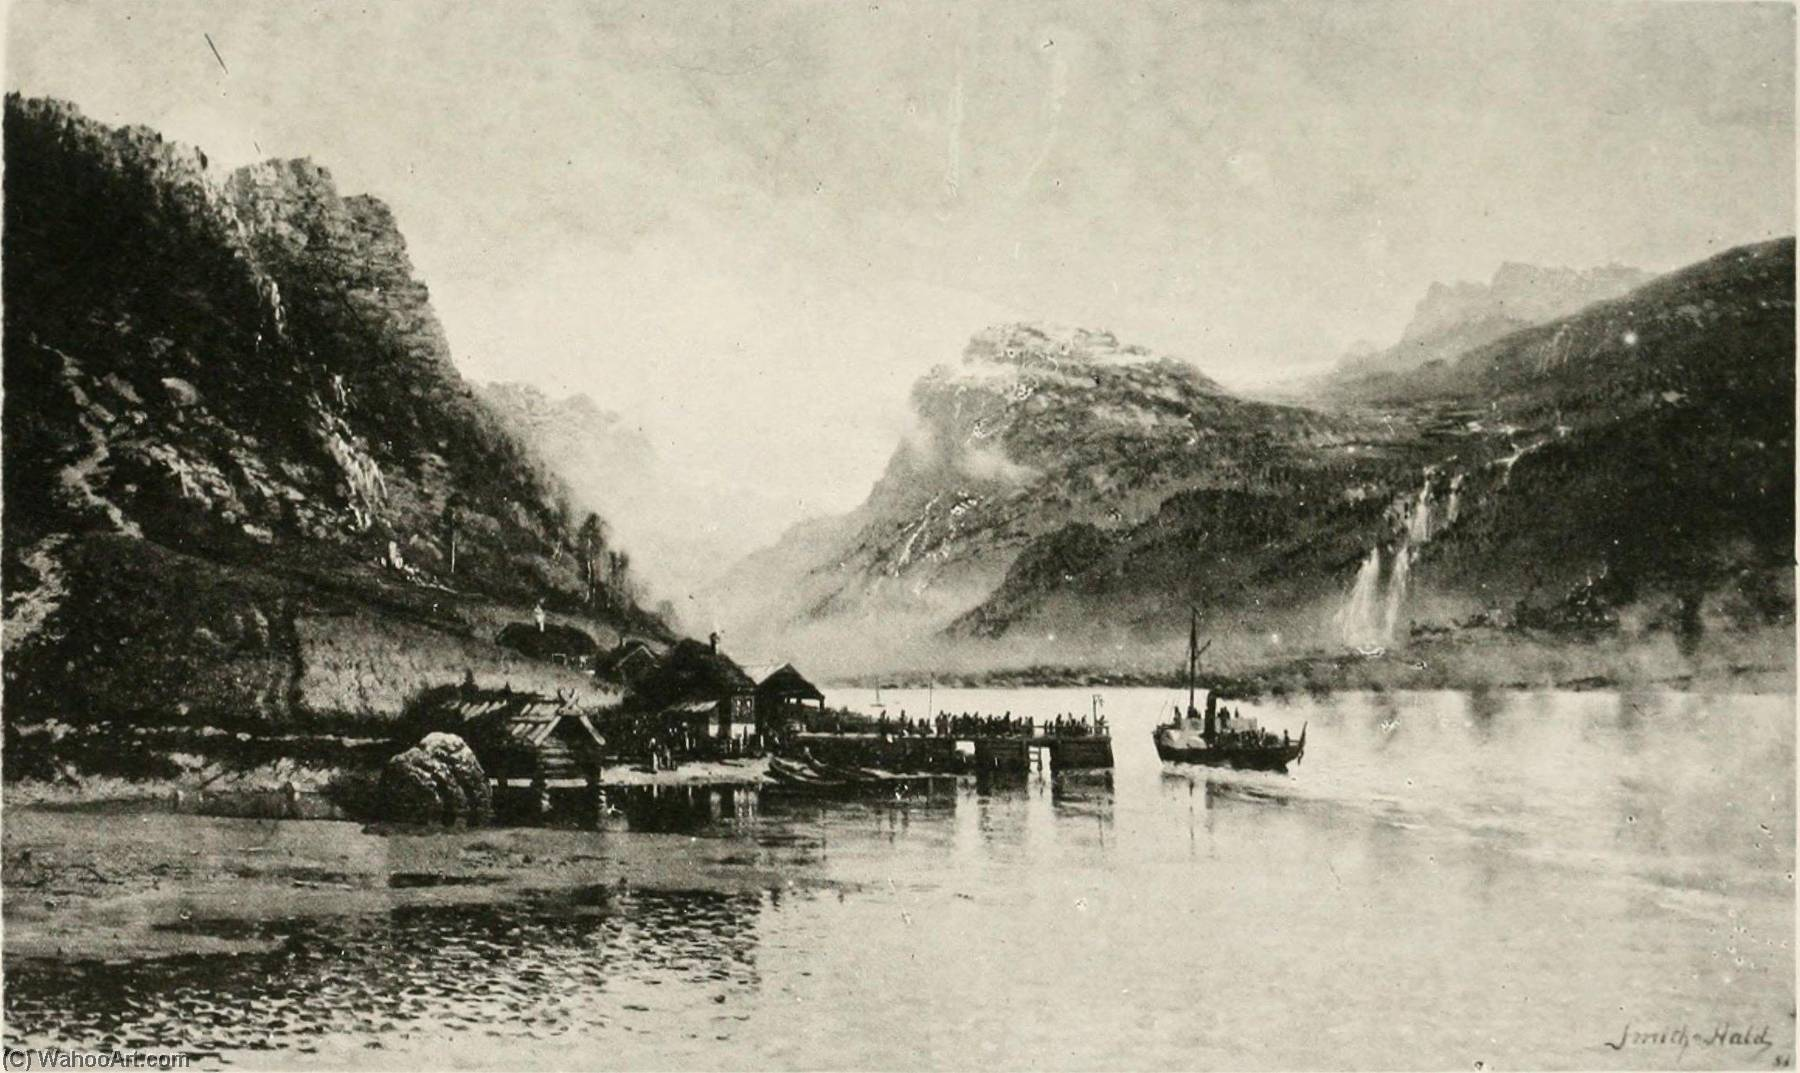 French Le Lac de Bandaksvandet by Frithjof Smith Hald